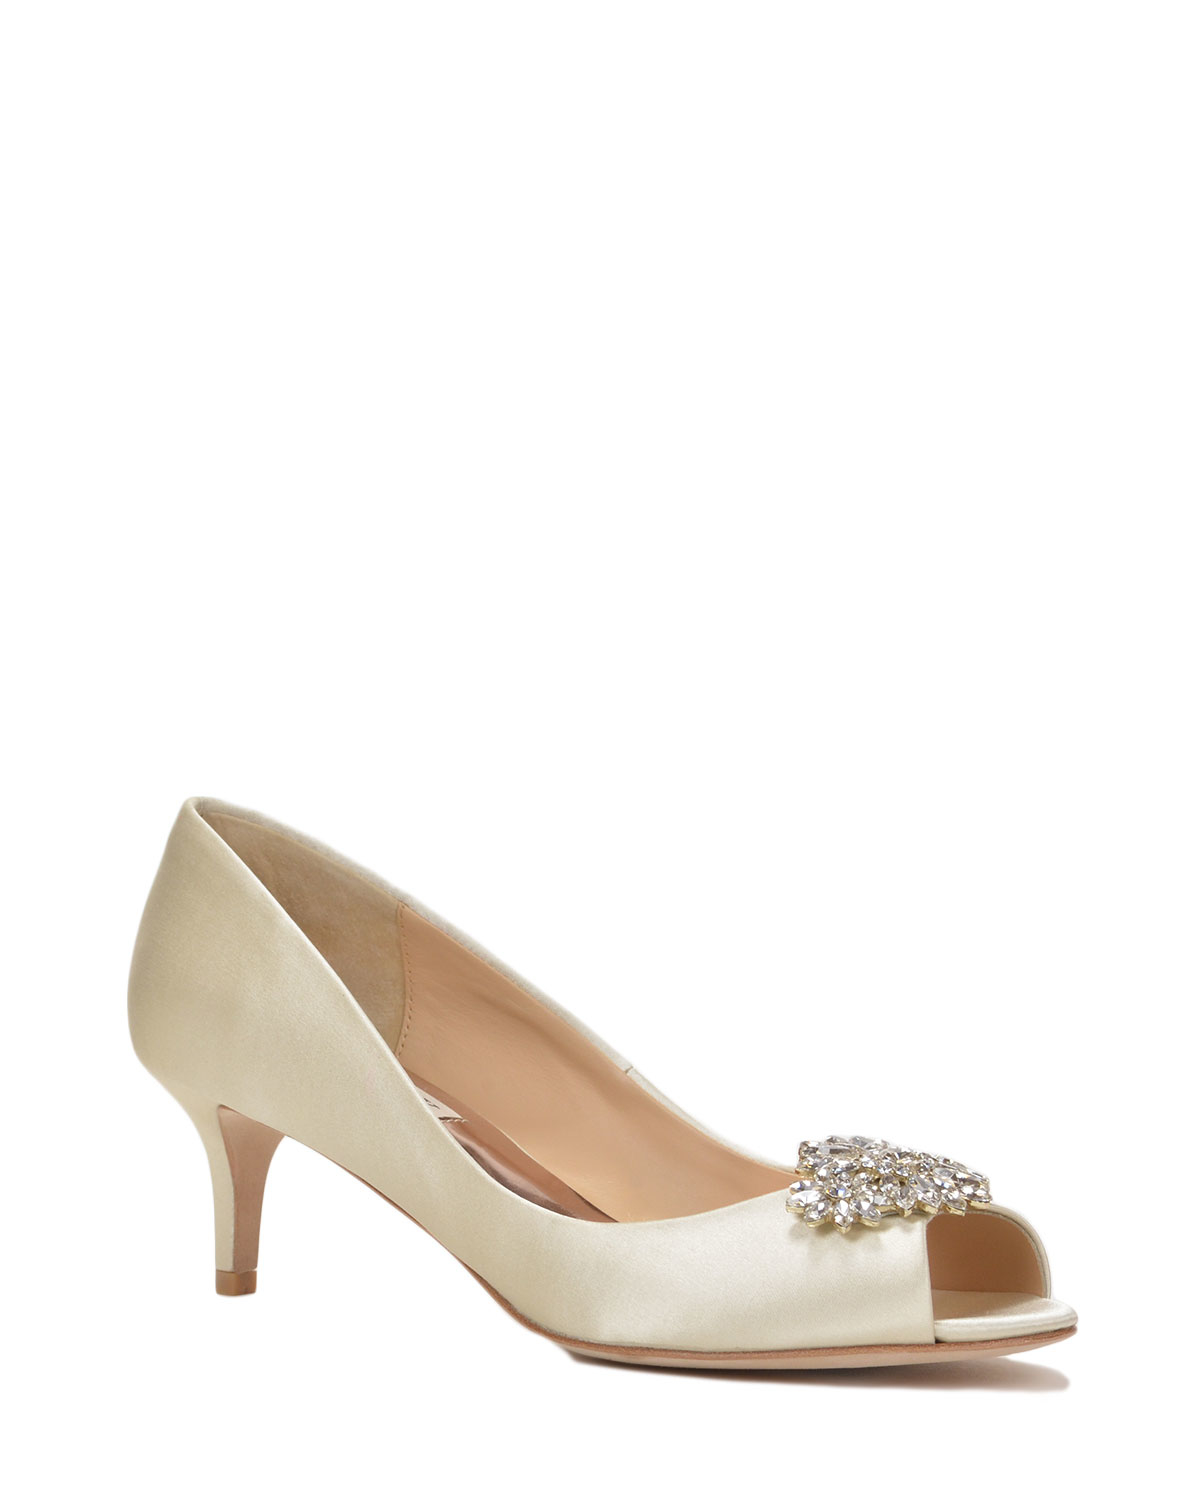 Where To Buy Badgley Mischka Shoes In Uk